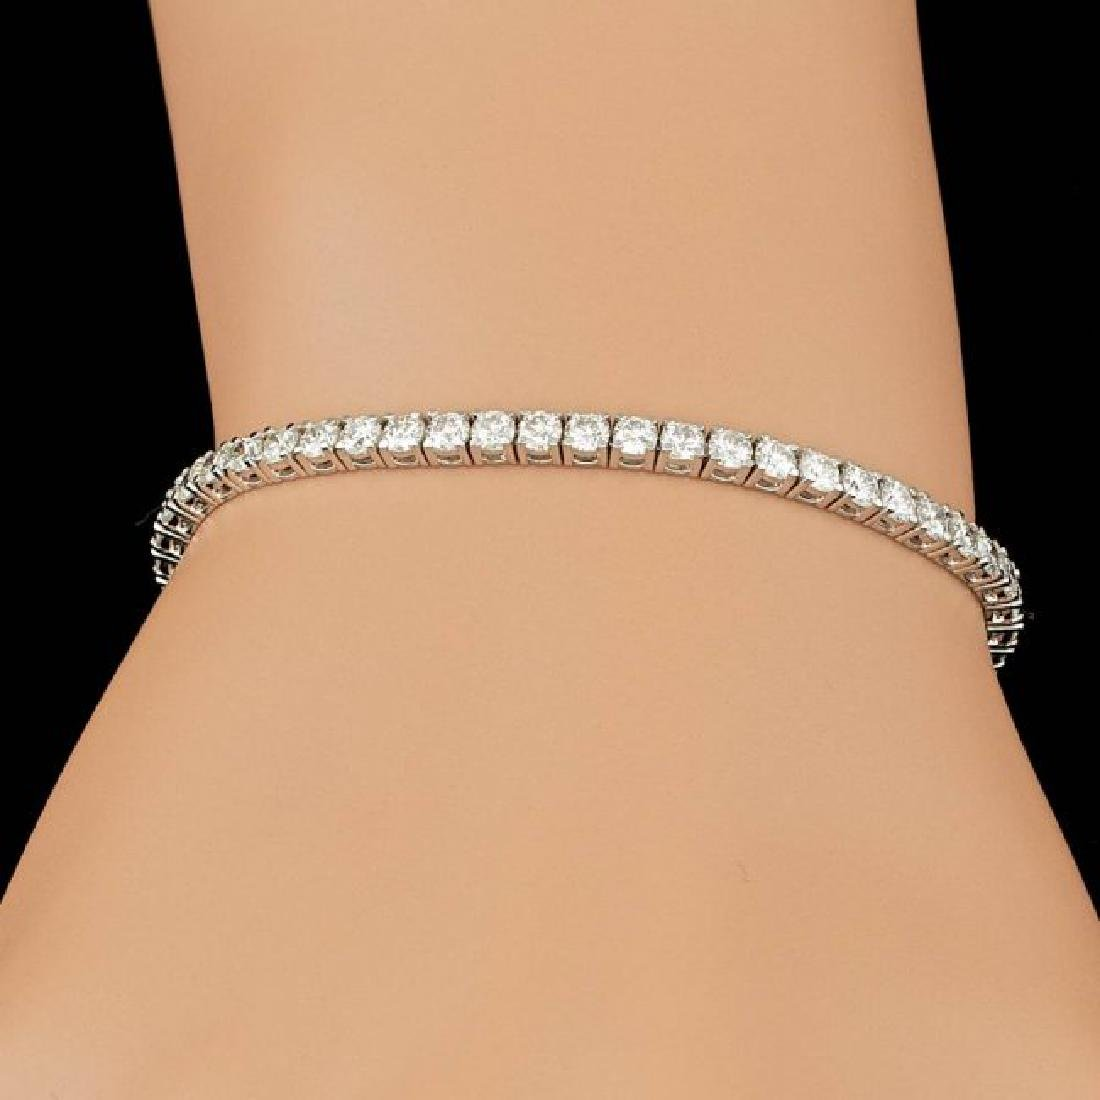 18k White Gold 5.30ct Diamond Bracelet - 4